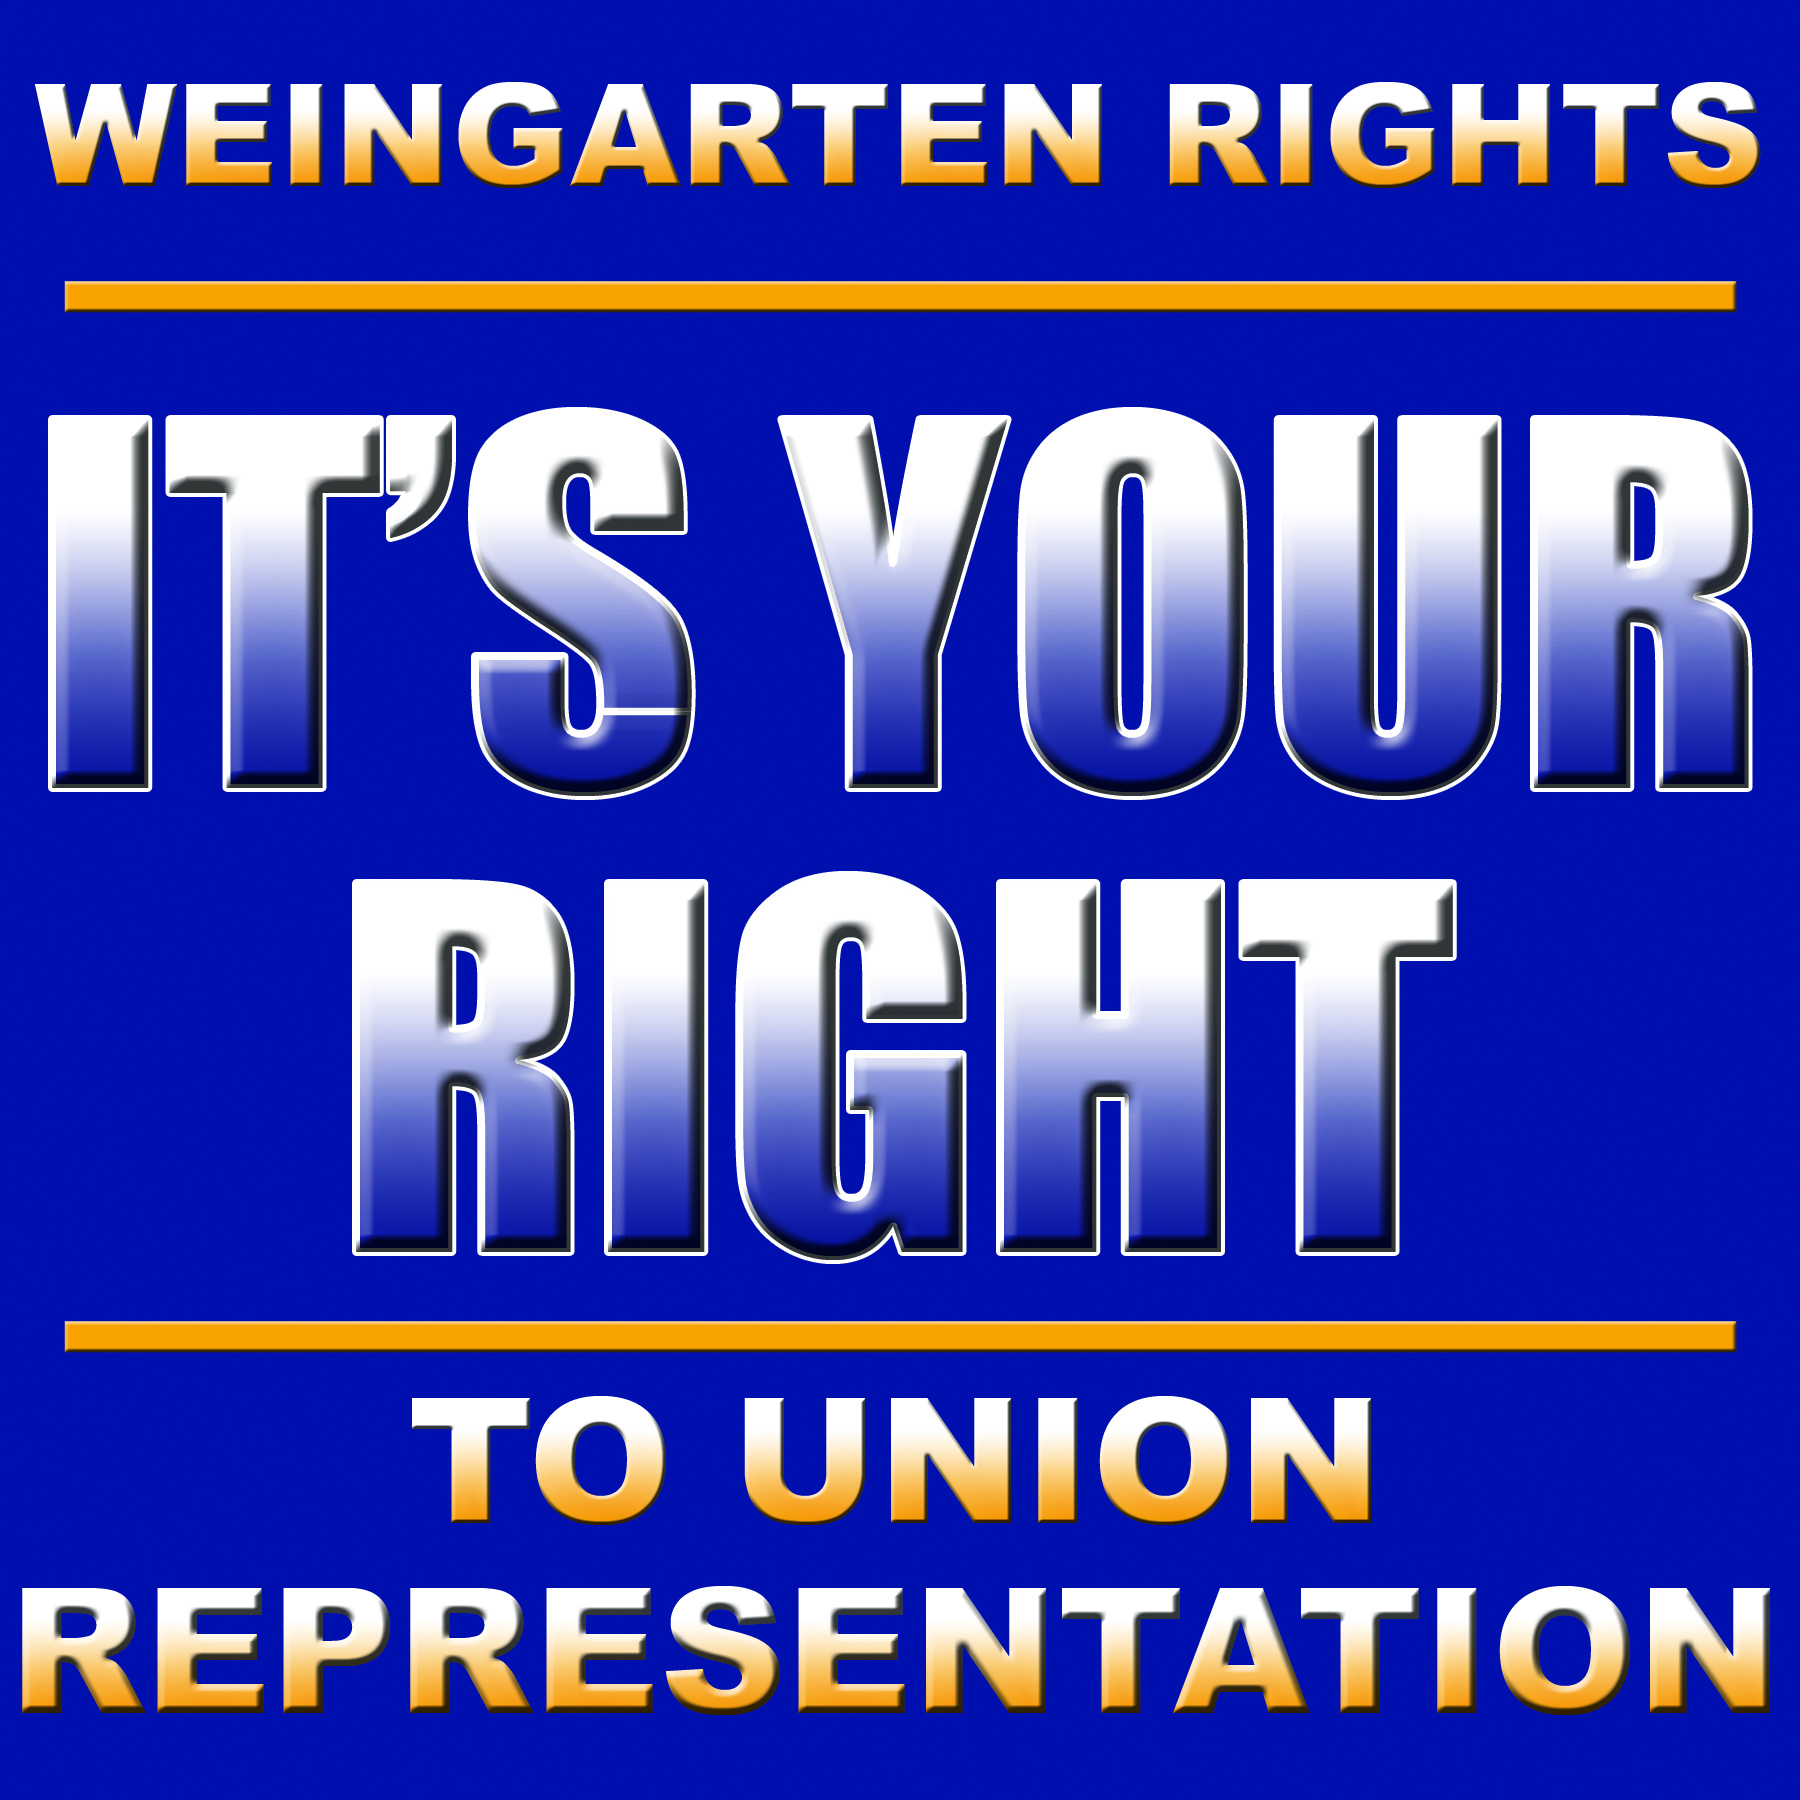 Weingarten Rights: The story of Leura Collins